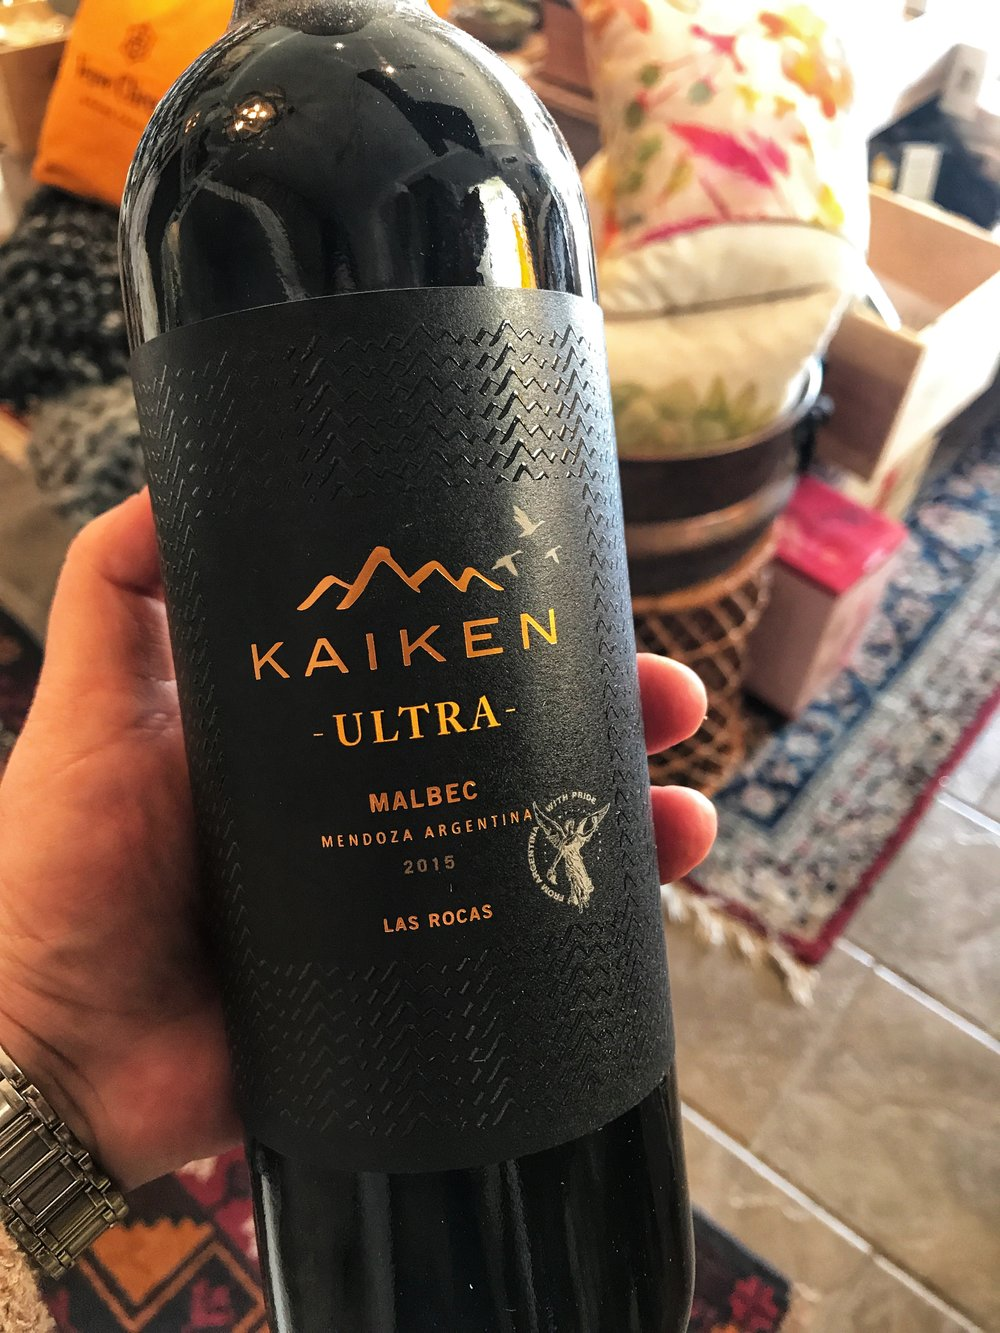 2015 Kaiken Ultra Malbec, Mendoza: 21.99 -  #45 Wine Spectator Top 100 of 2017 This Malbec shows a beautiful deep ruby color with violet hues. On the nose, flowery and mineral notes are evident, with spicy touches that make the wine more complex and are finely blended with the elegance of the French oak. On the mouth, it's a wine of great structure and power – sweet plum, mocha and black cherry flavors blend with well-integrated oak and tannins that are both soft and present. It has an outstanding balance and a very long and polished finish.